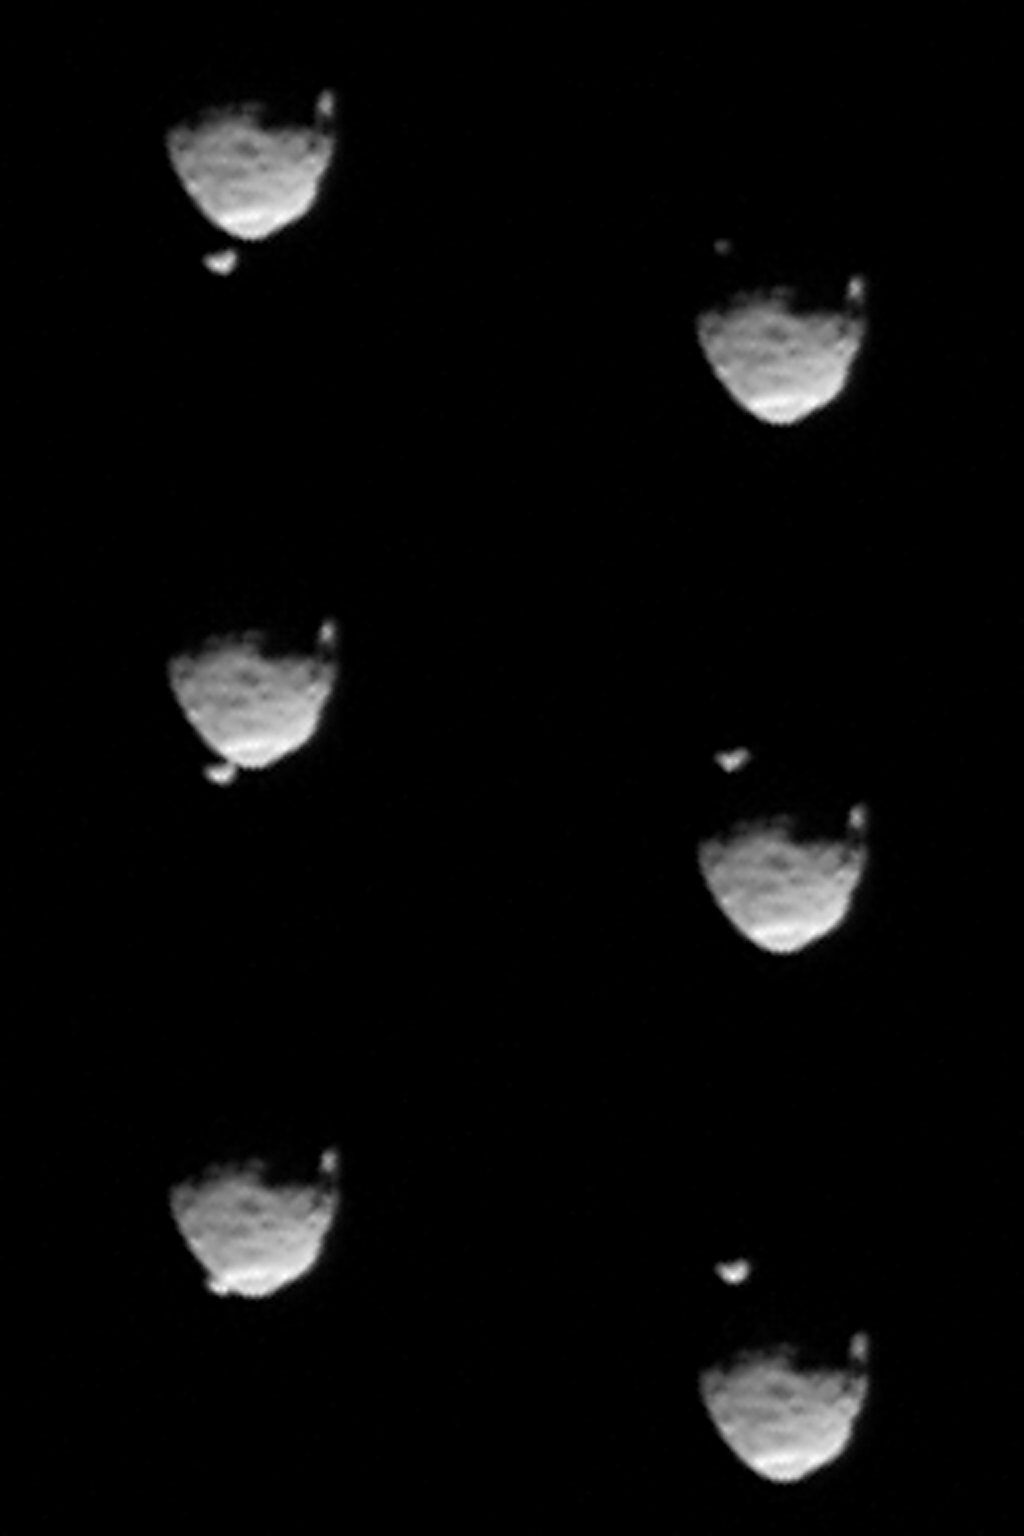 These six images from NASA's Mars rover Curiosity show the two moons of Mars moments before (left three) and after (right three) the larger moon, Phobos, occulted Deimos on Aug. 1, 2013.